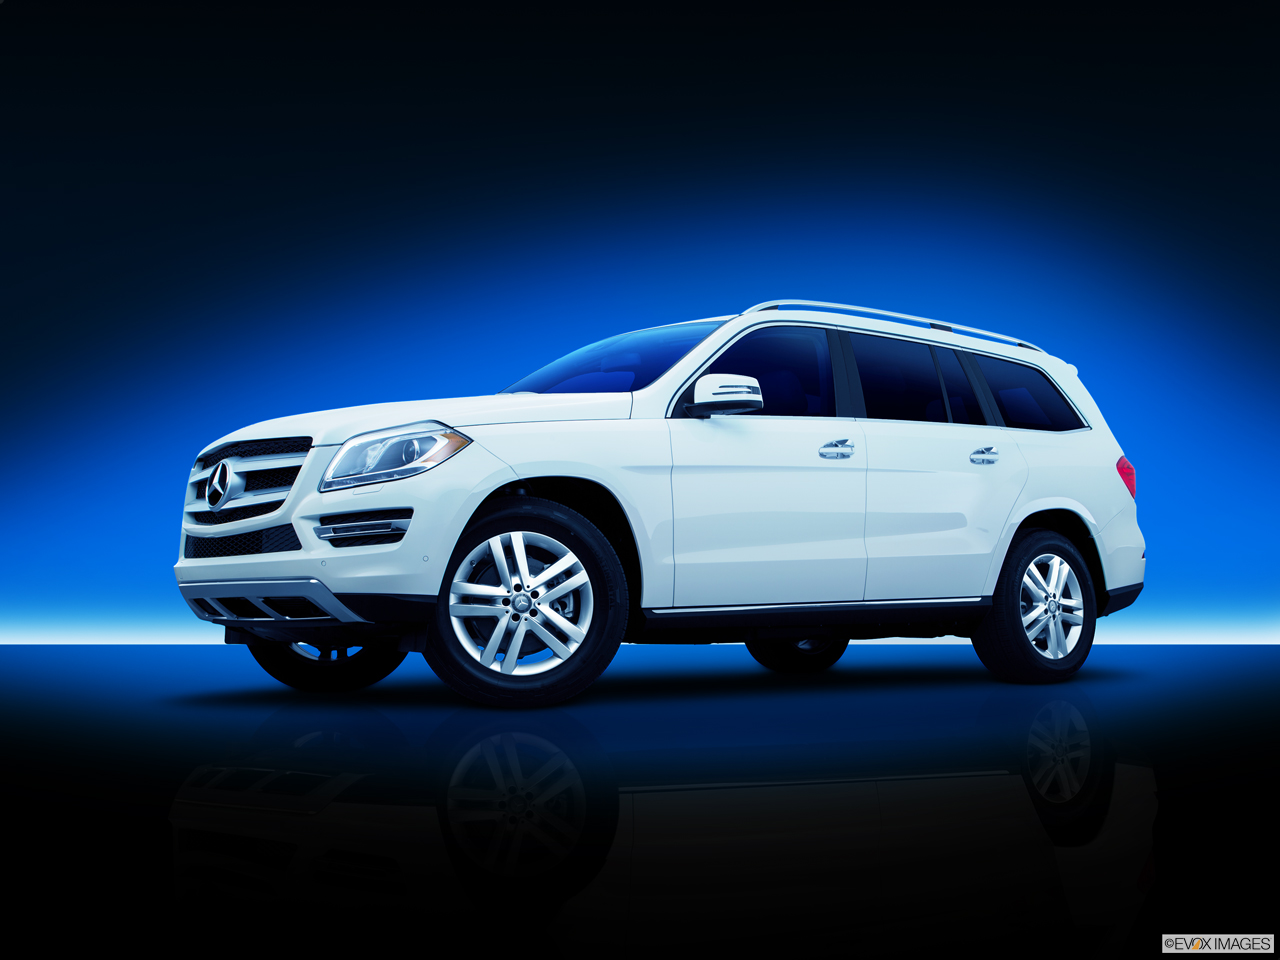 Car pictures list for mercedes benz gl class 2016 gl 500 for Mercedes benz gl 250